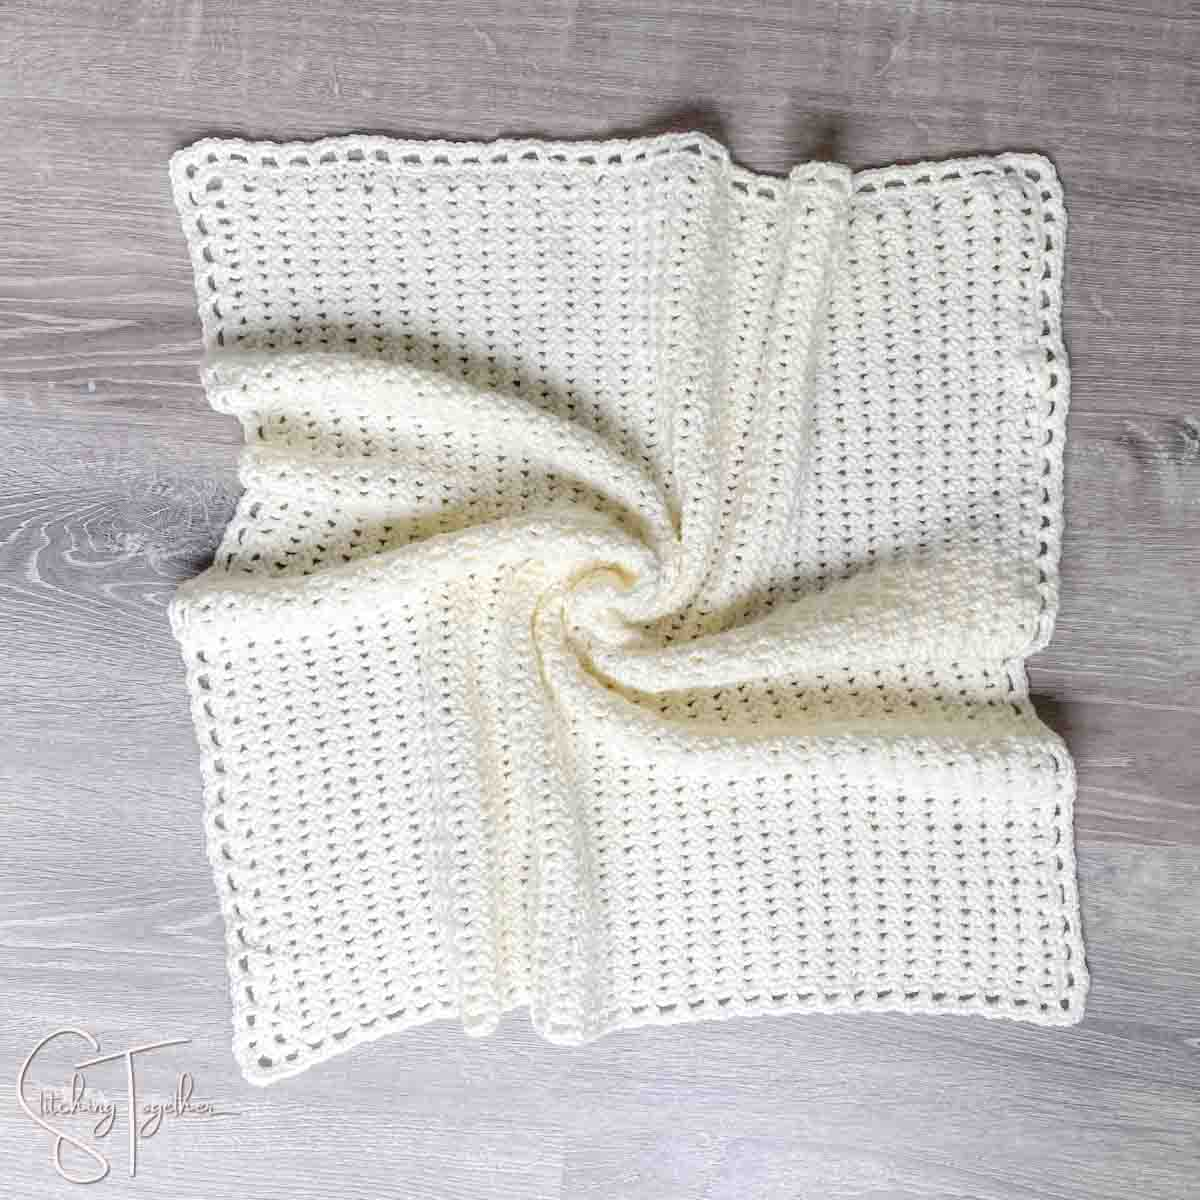 neutral crochet baby blanket laid out on the floor